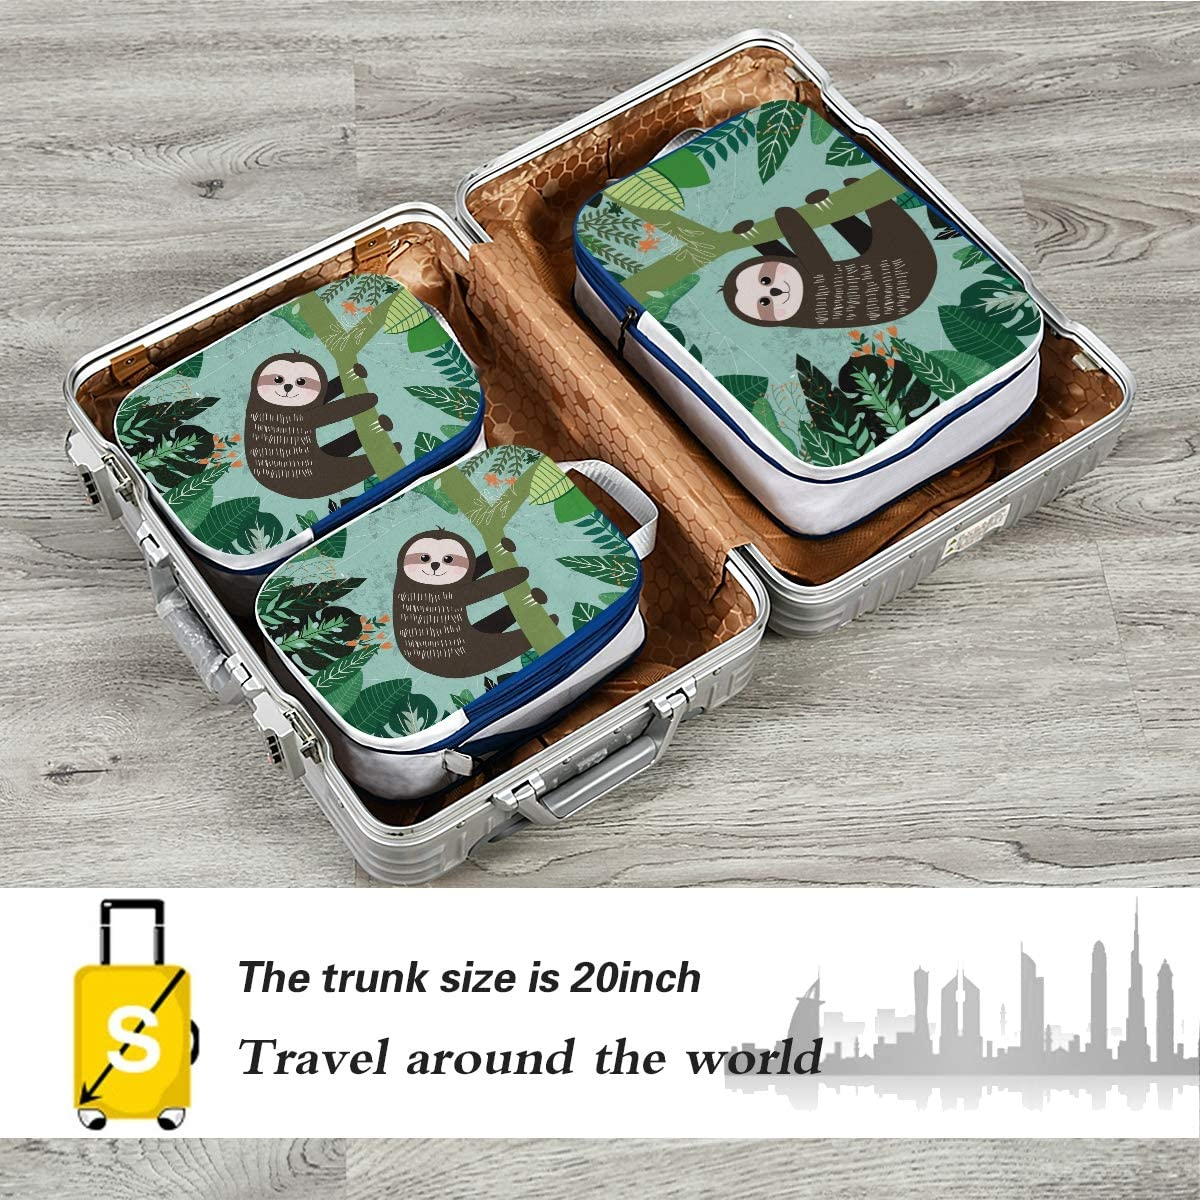 ATONO Botanical Tropical Green Leave And Cute Sloth In Forest Travel Packing Cubes Luggage Organizer Bags Storage 3 Pack Sets Toiletries Shoe Bag for Business Trip Holiday Kids/&Adults